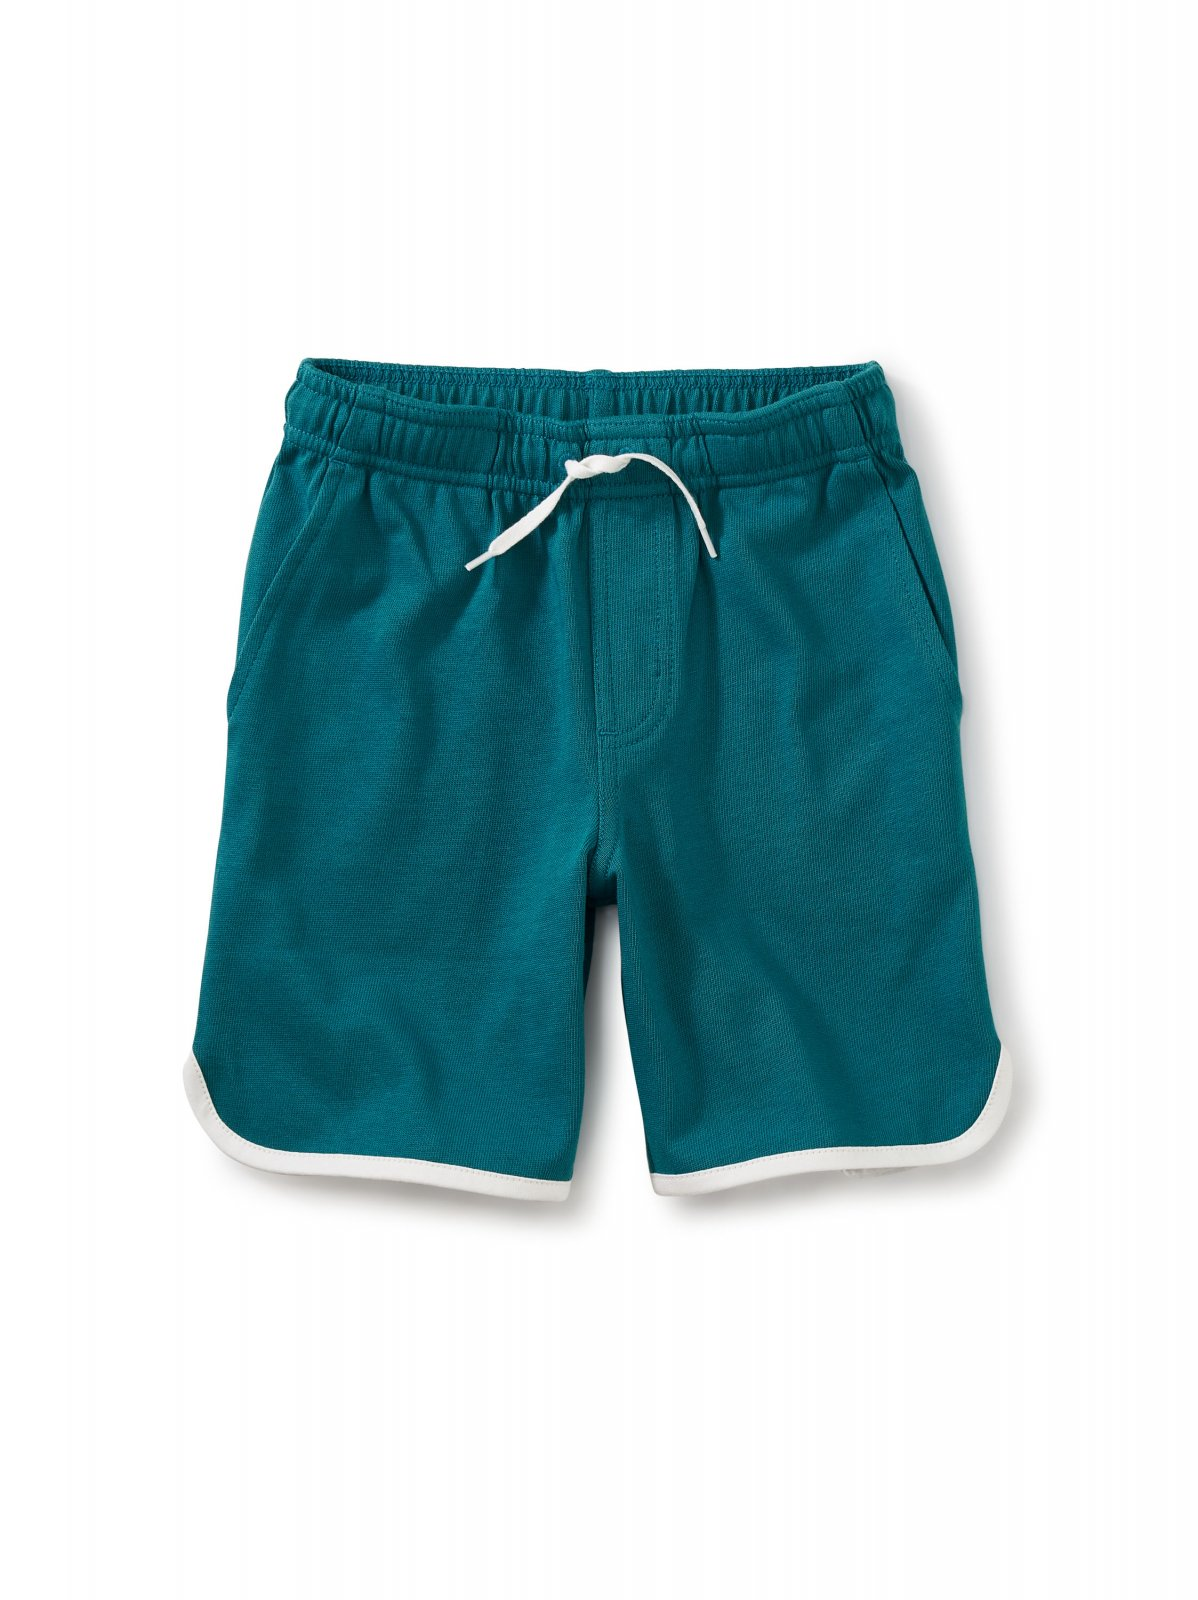 Kids Ringer Shorts in Scuba Blue by Tea Collection